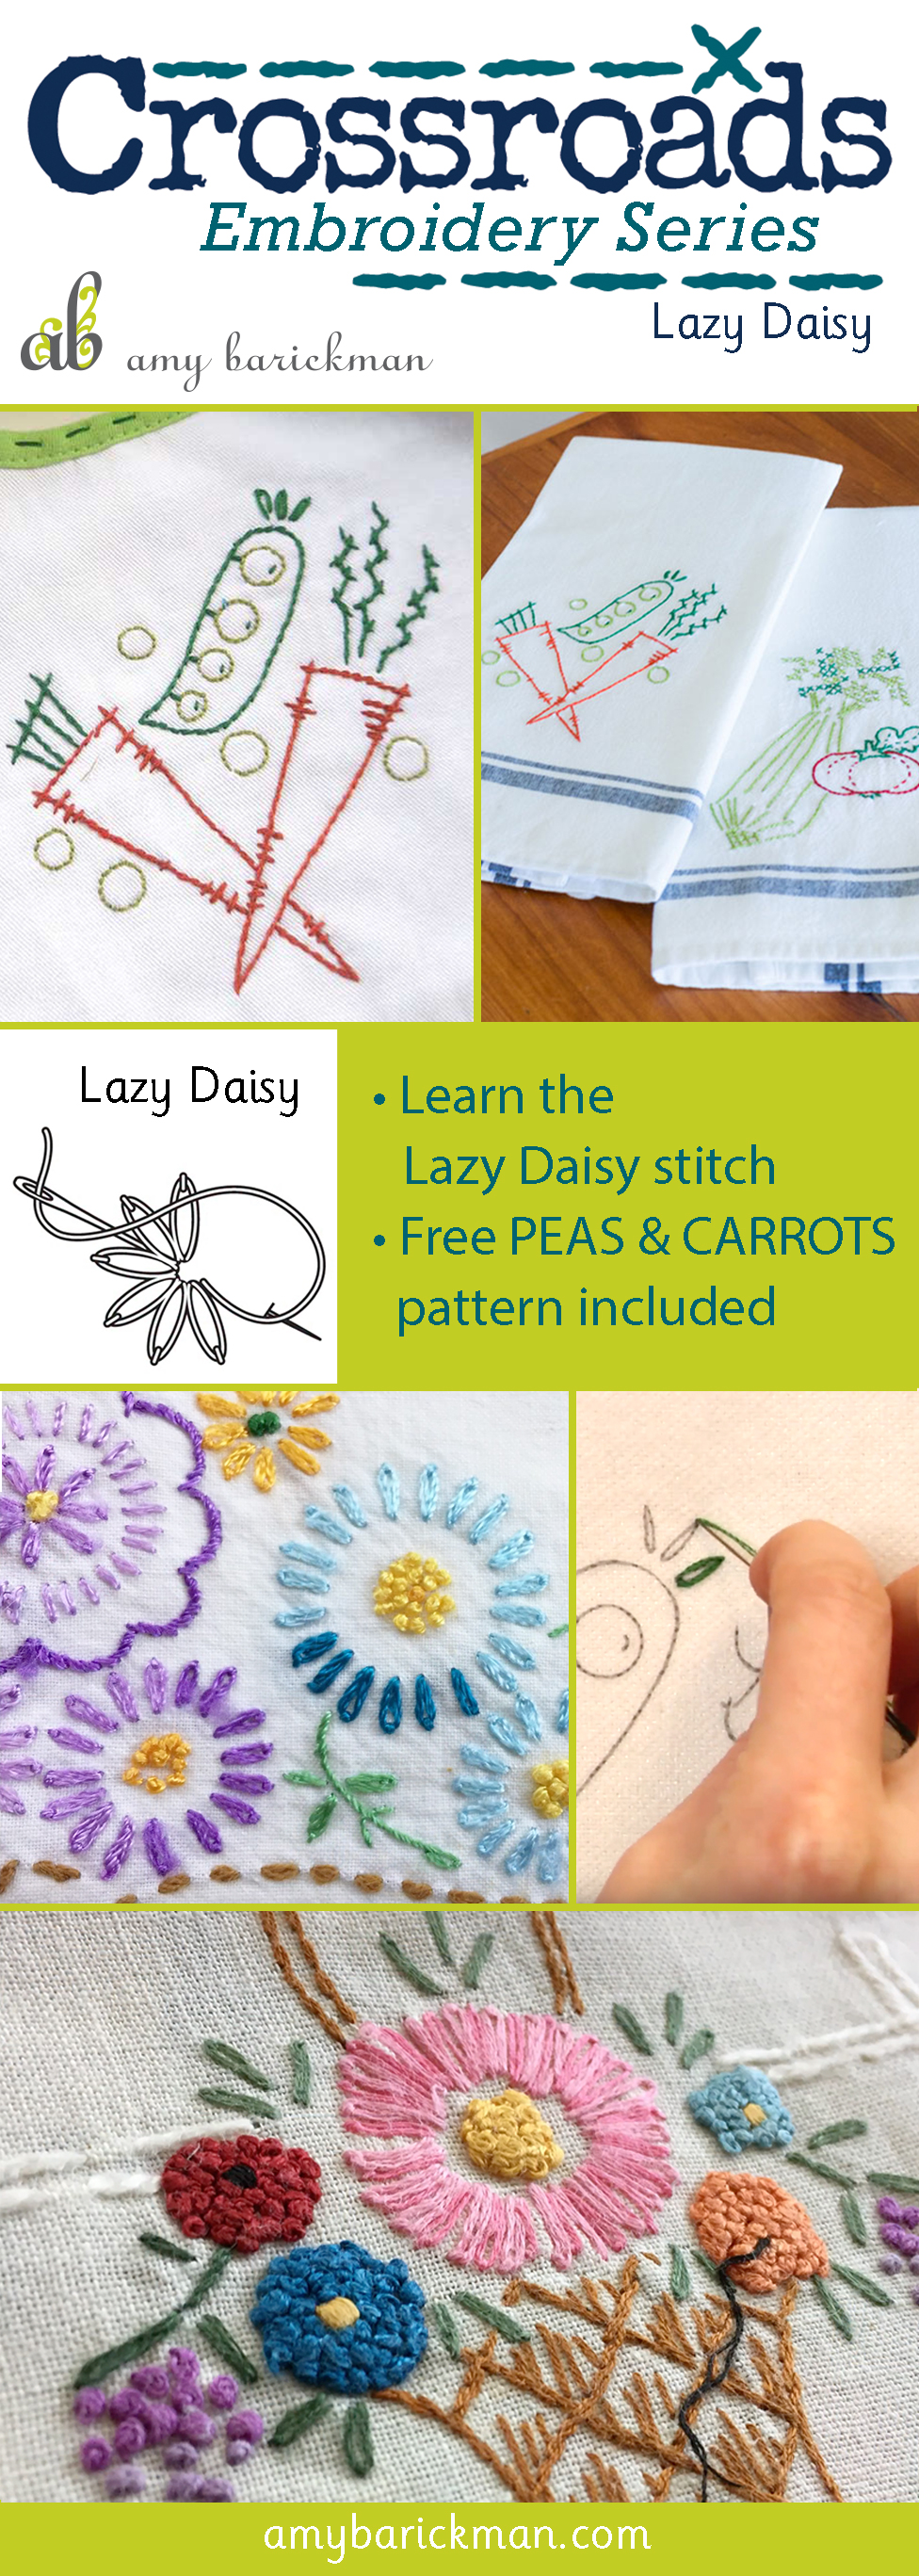 A video tutorial for the Lazy Daisy embroidery stitch, plus a free design to practice!